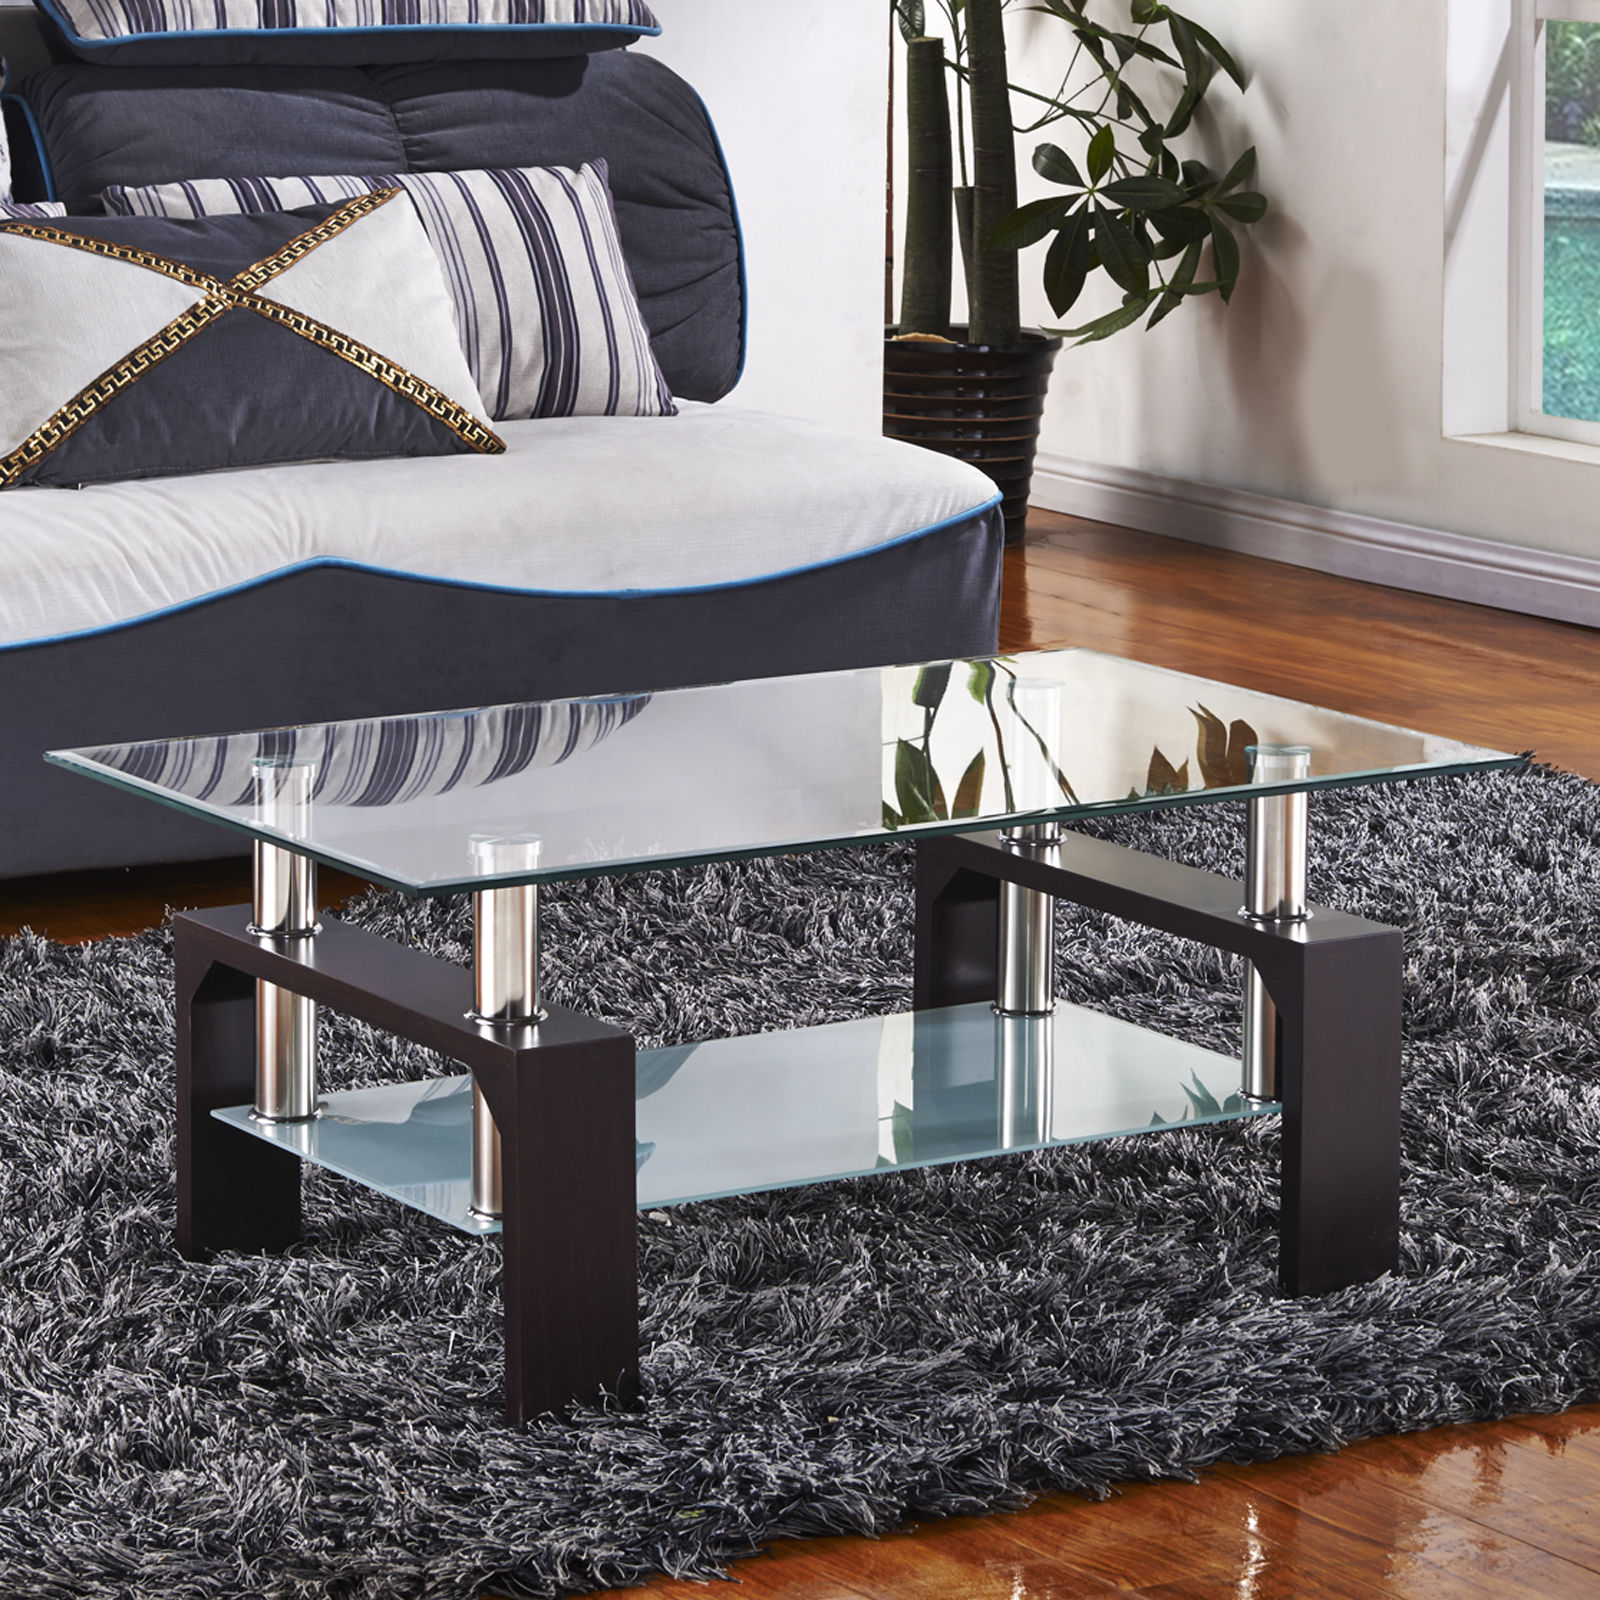 Design Glass Coffee Table Rectangular Black White Red